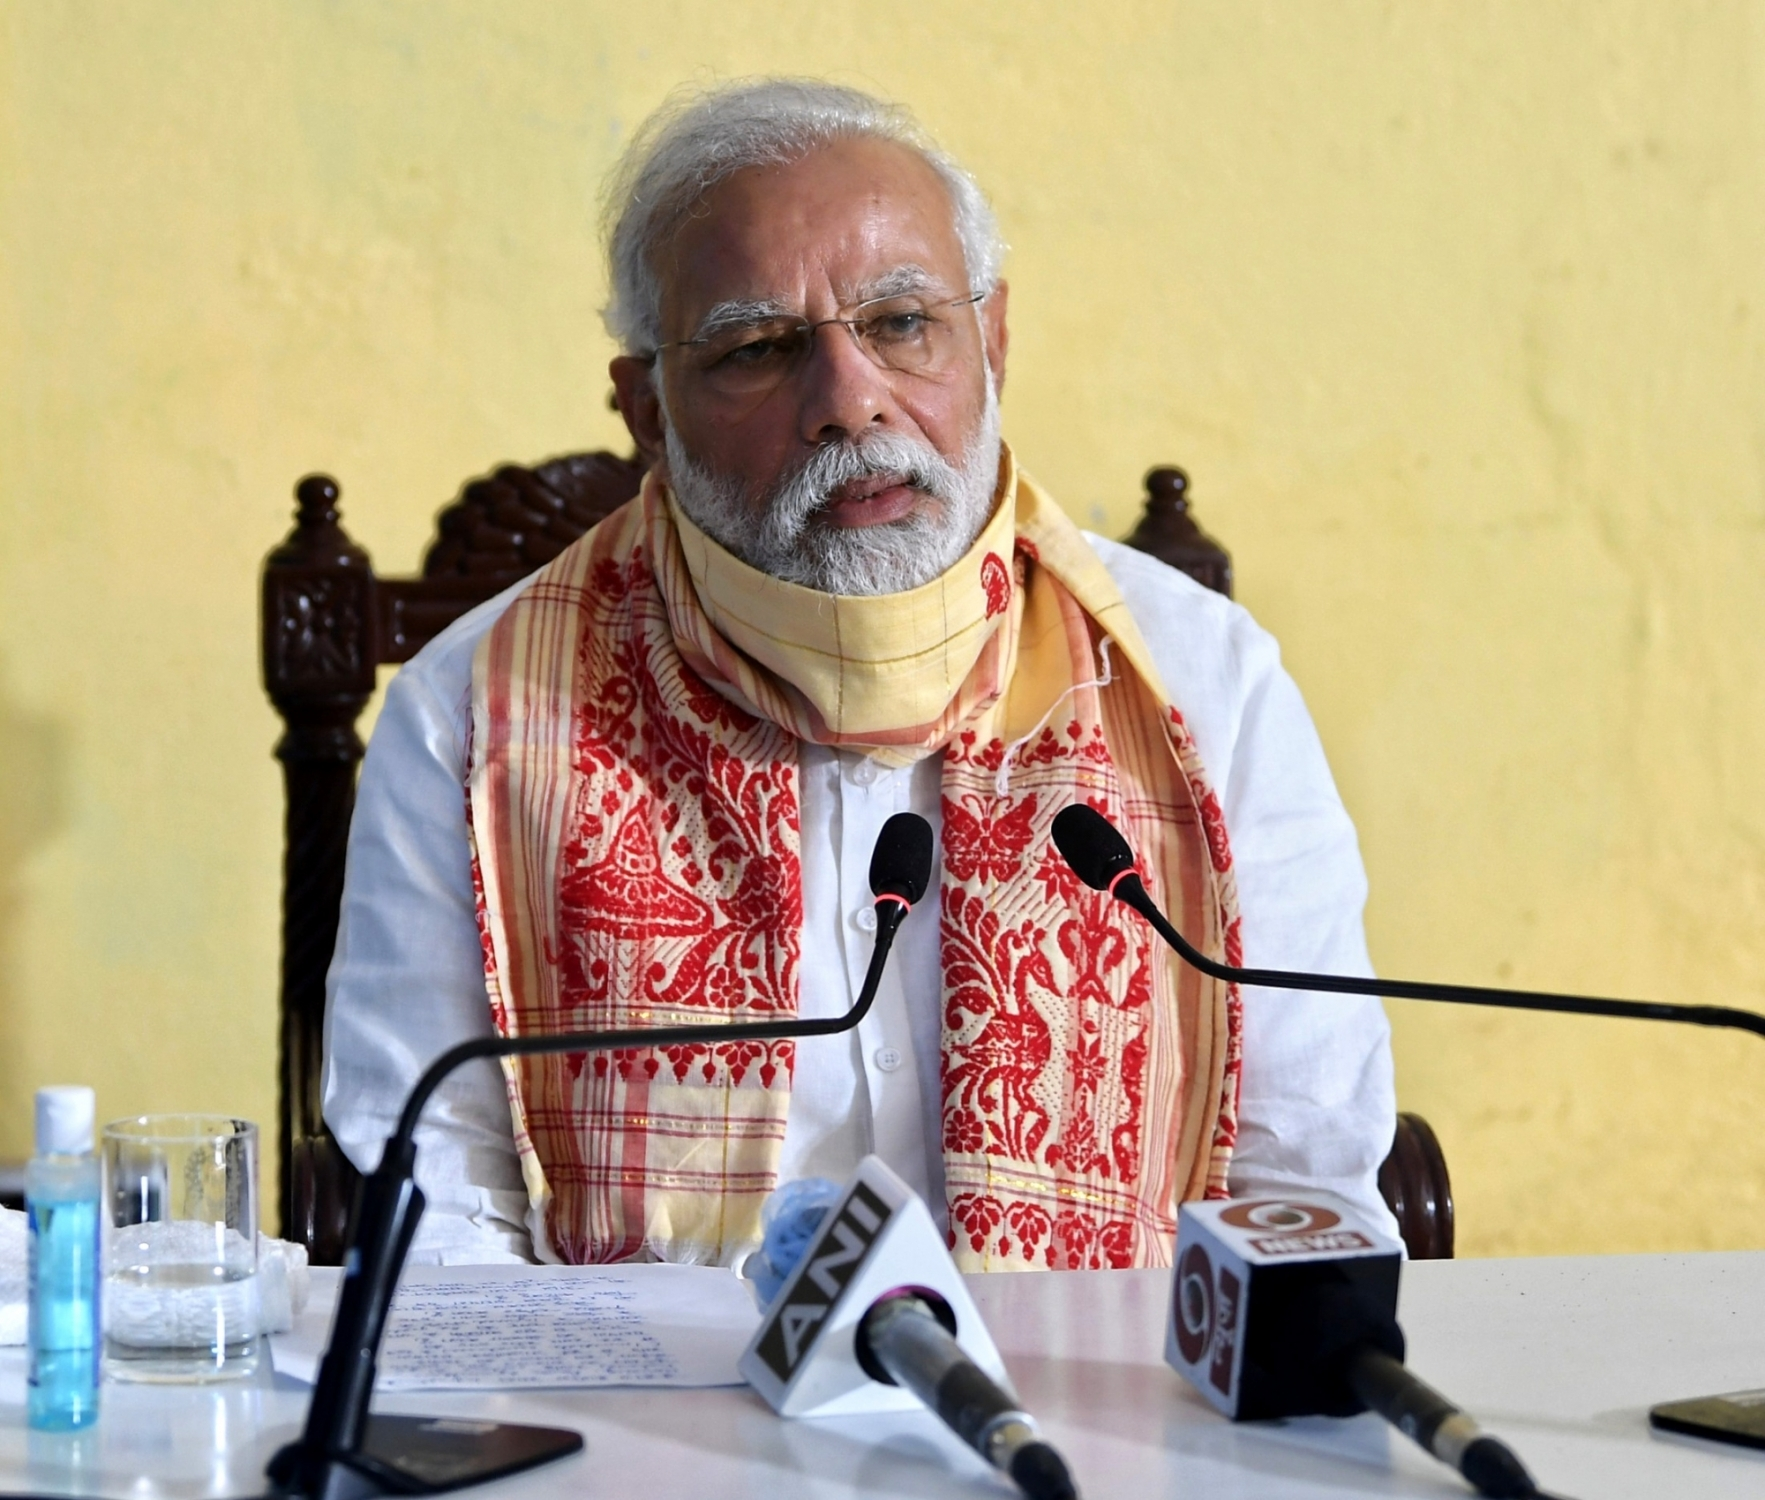 Kolkata: Prime Minister Narendra Modi holds review meeting with the officials at Basirhat, West Bengal after his aerial survey of cyclone Amphan-affected areas of the state, on May 22, 2020. (Photo: IANS/PIB) by .